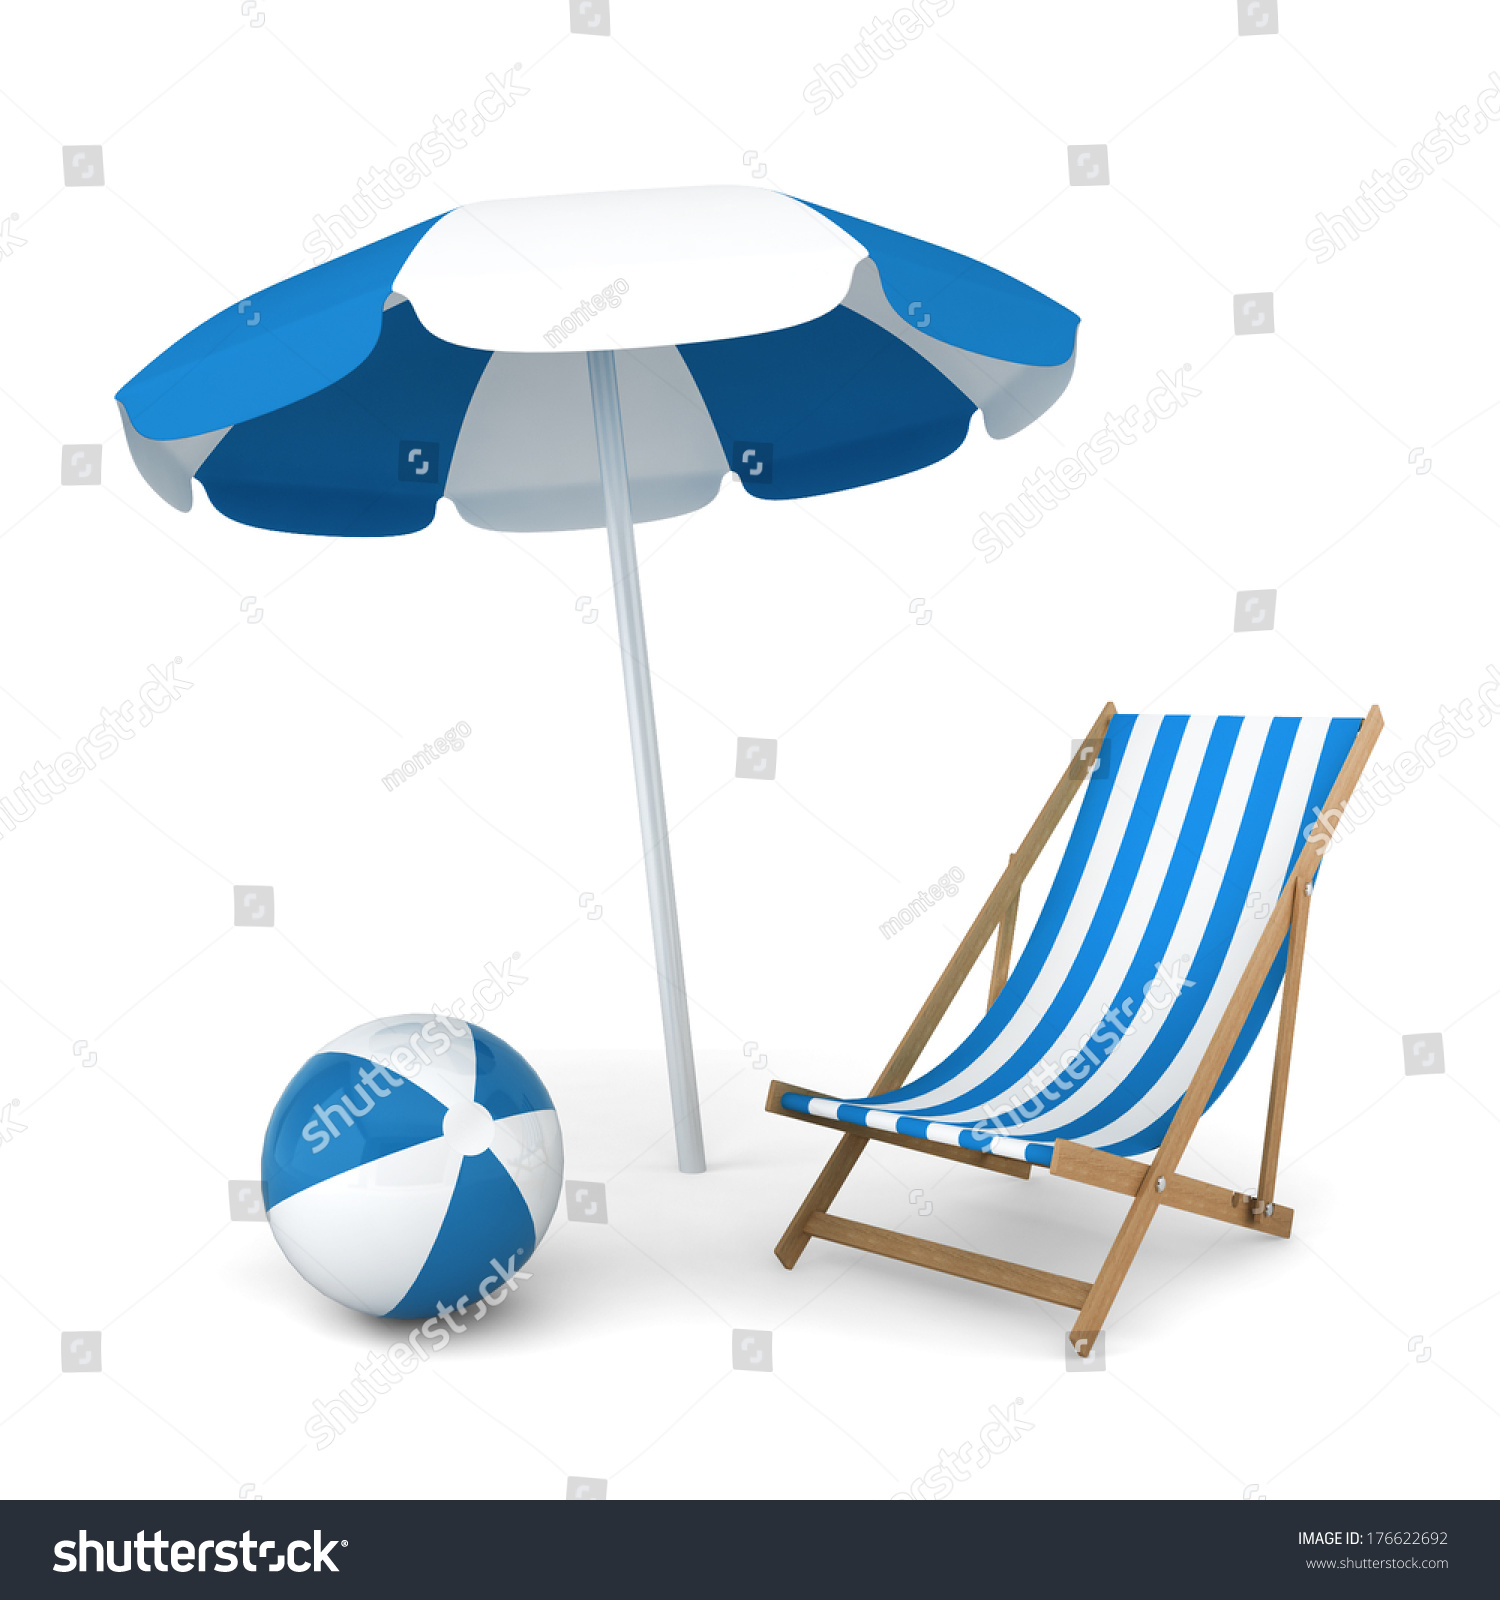 Awesome Folding Chair with Umbrella Inspirational Chair Ideas